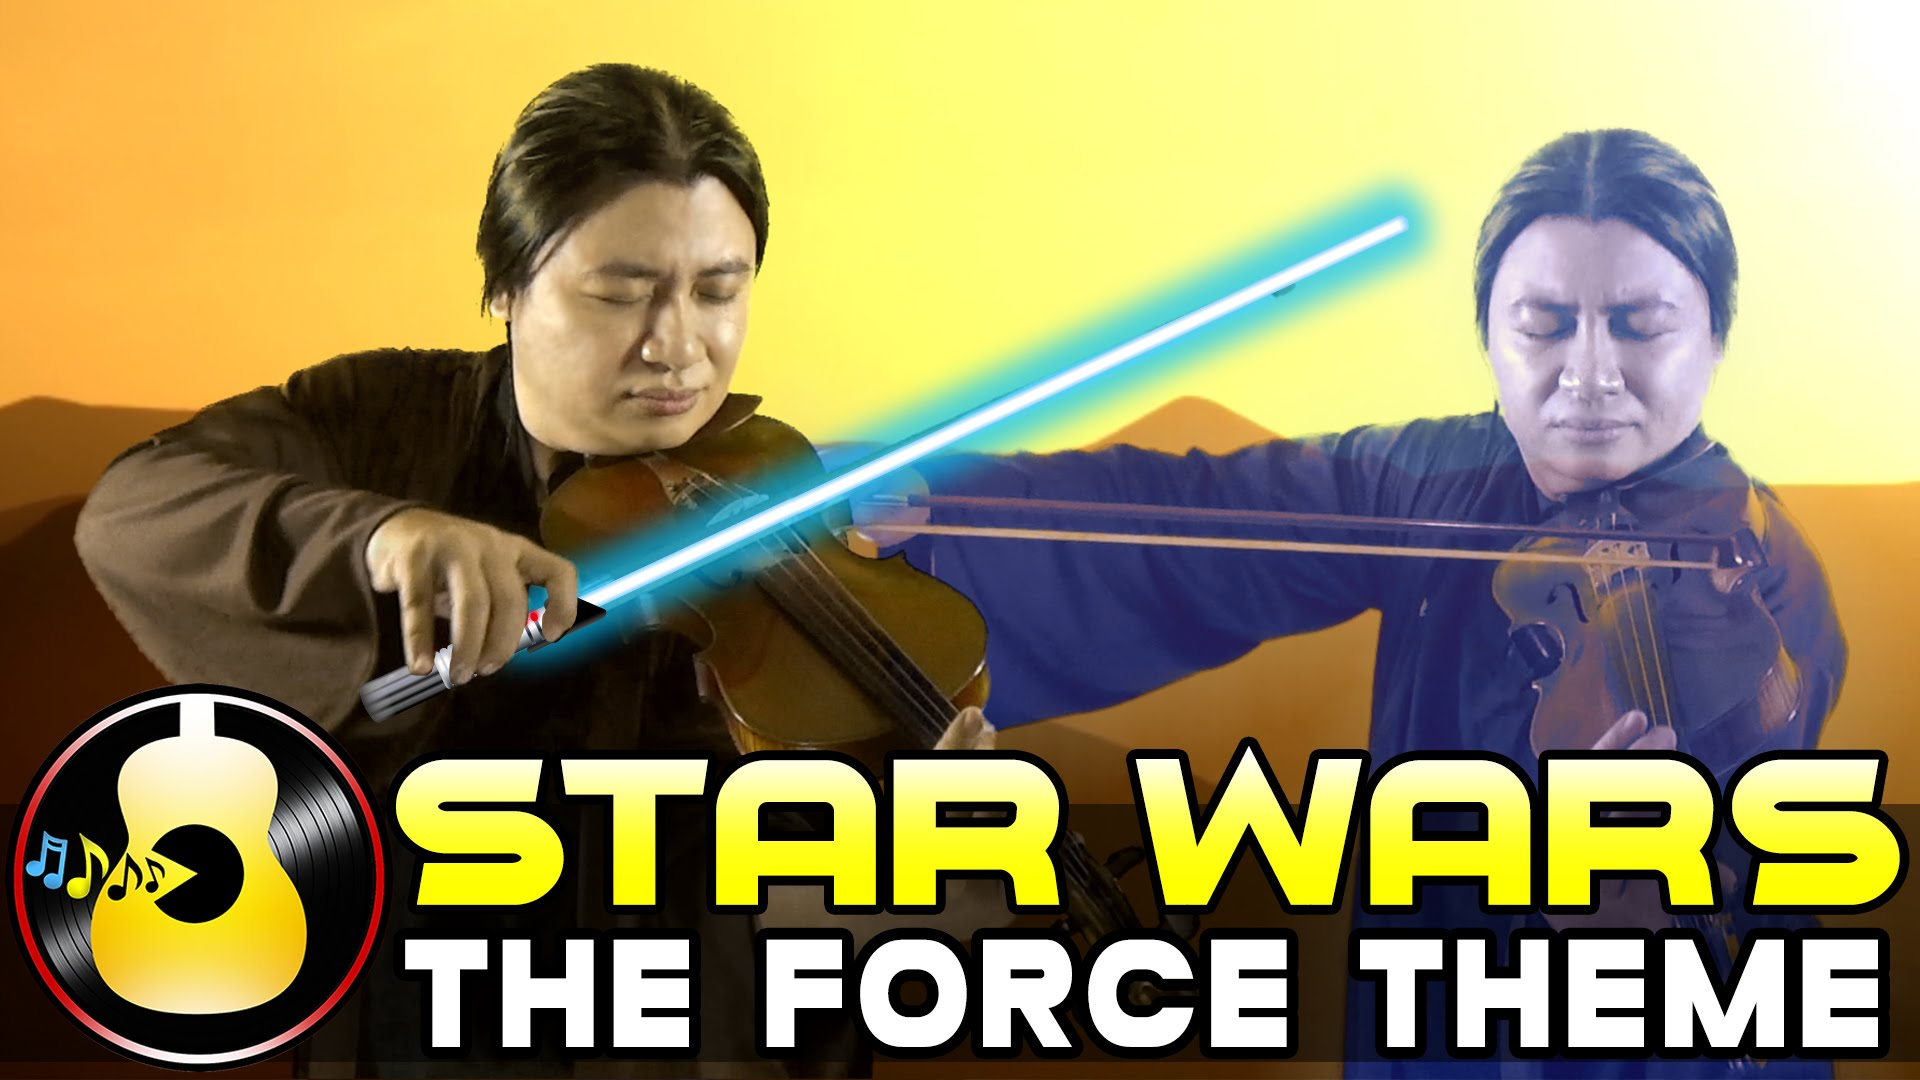 Video of the Day: 'Star Wars: A New Hope' Force Theme